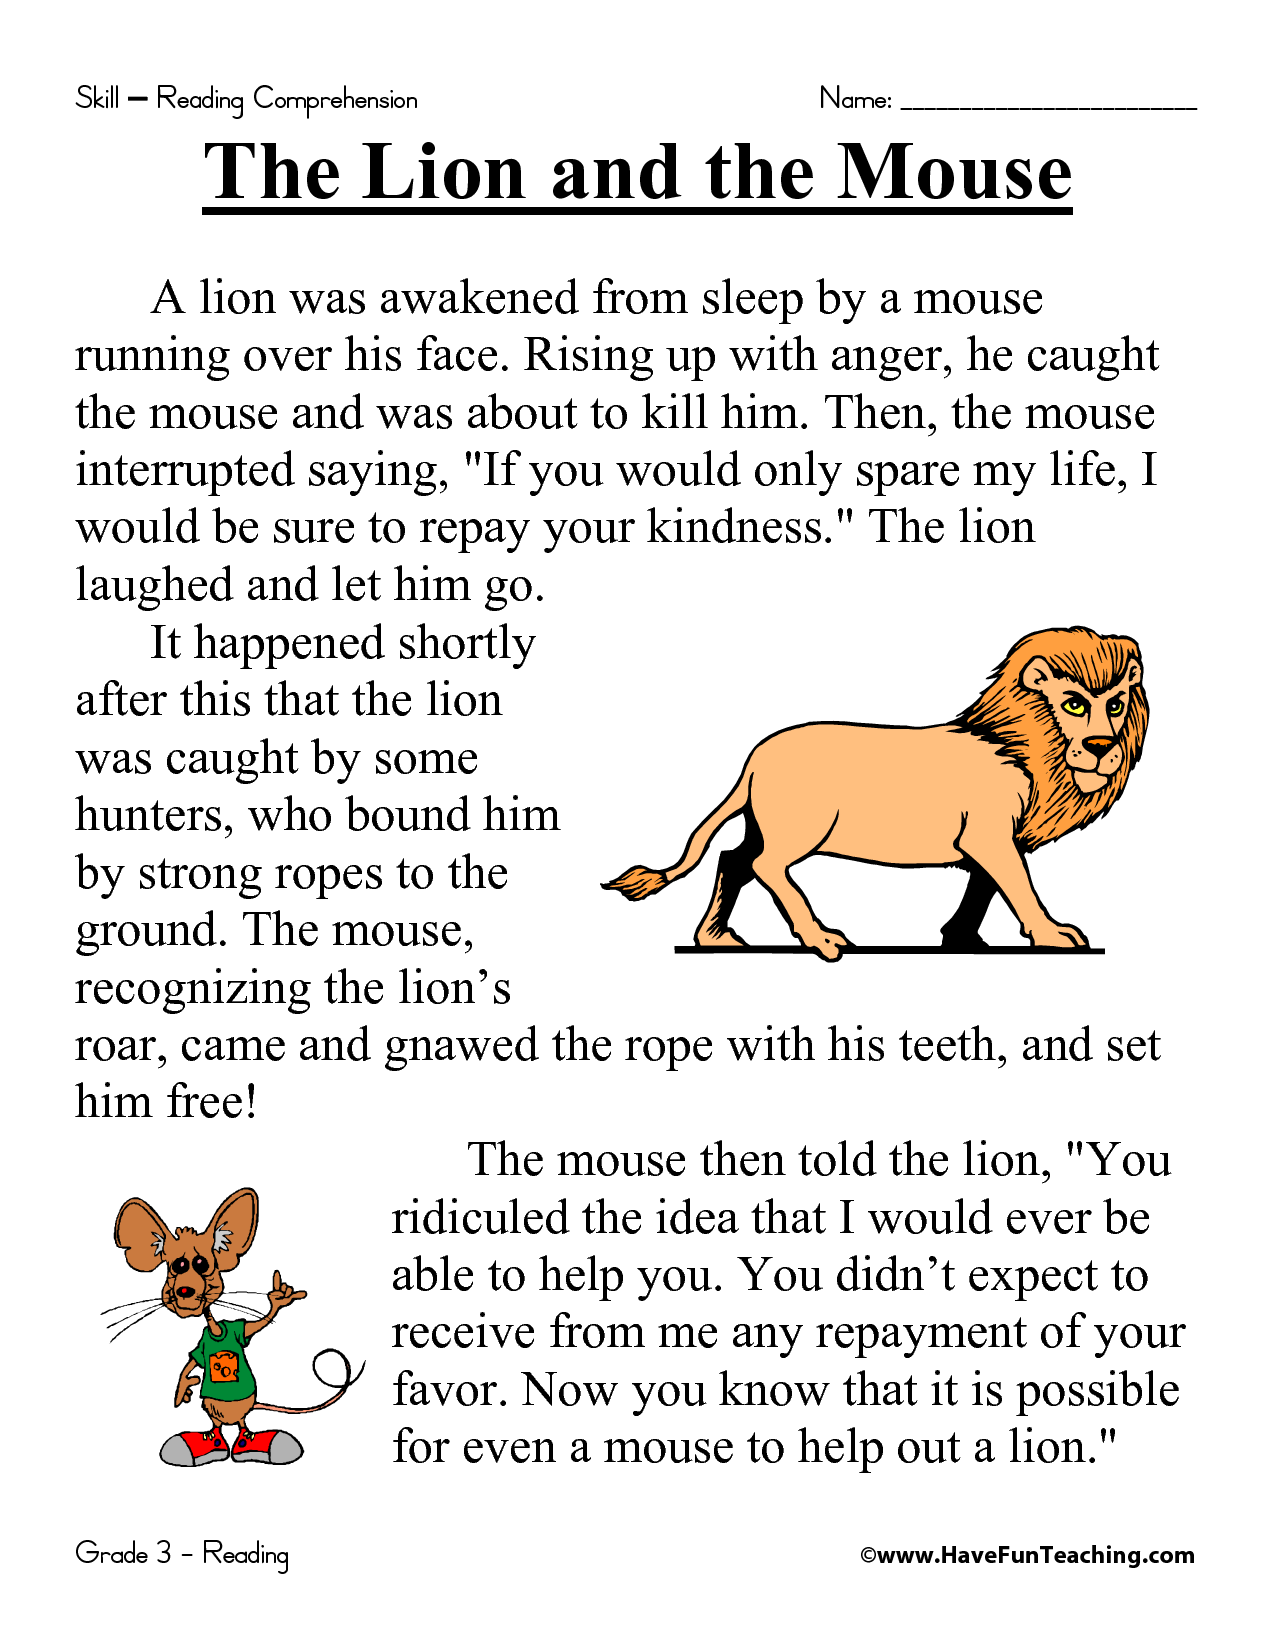 Worksheet Grade 2 English Reading printable reading comprehension worksheets inc exercises for first grade the lion and mouse worksheet